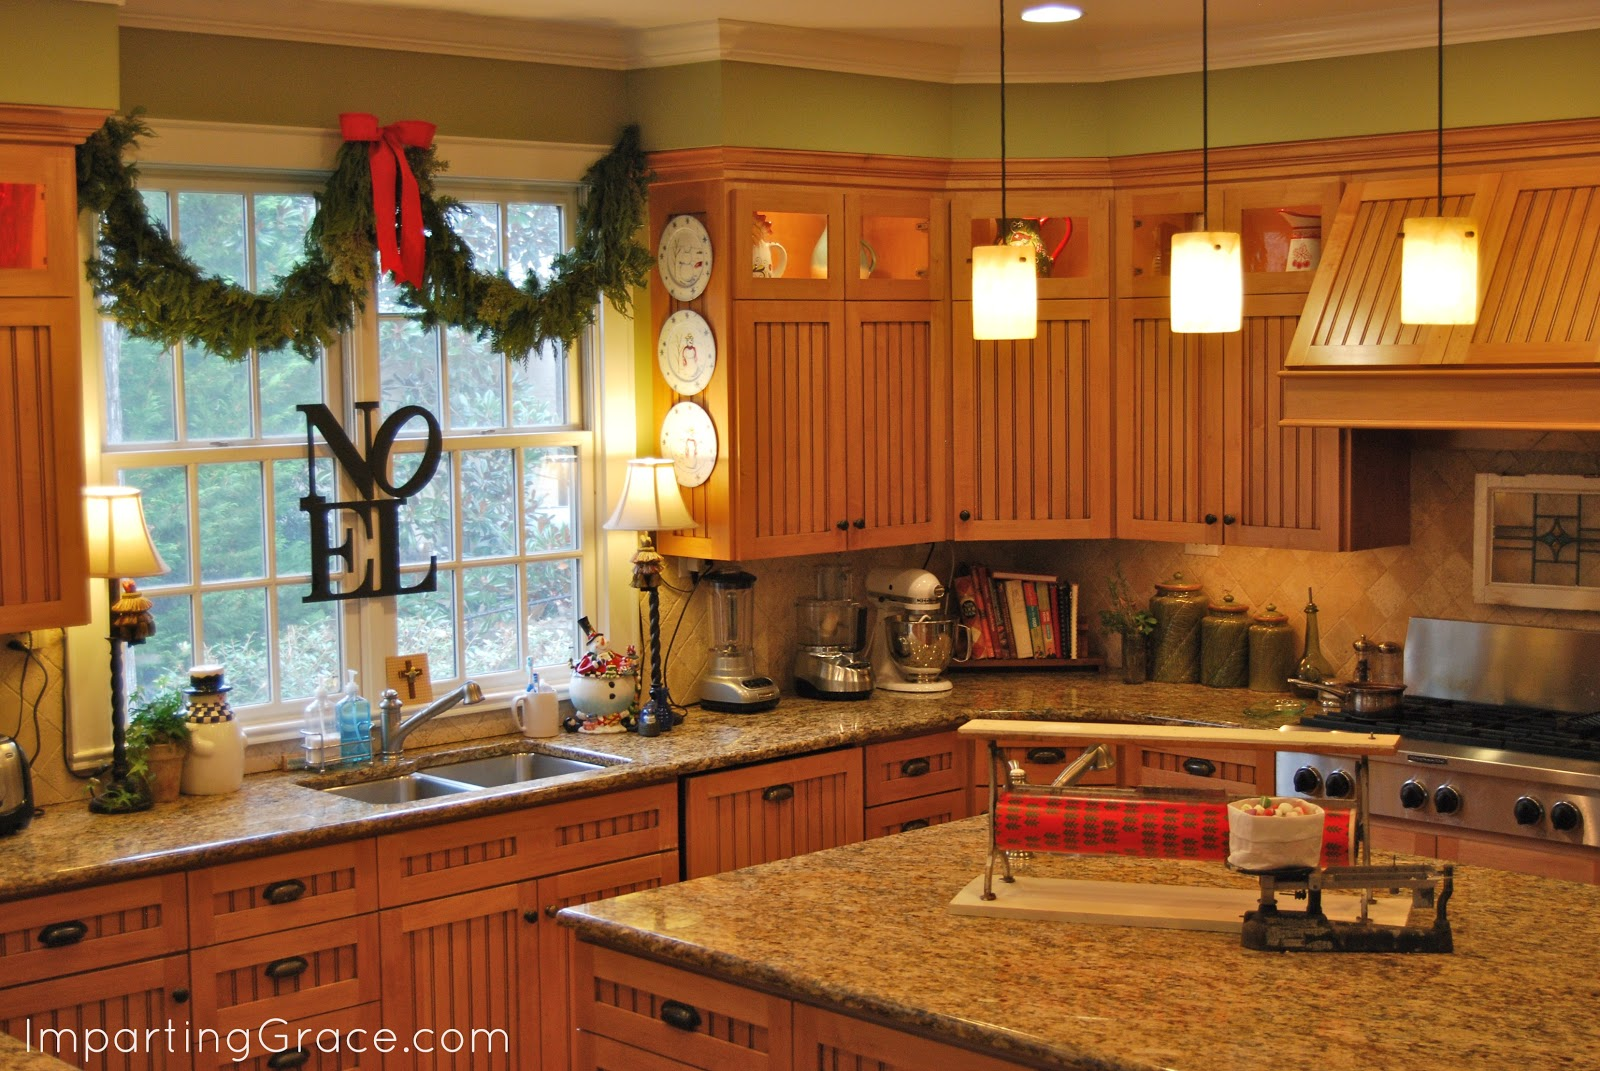 Kitchen Decorations For Countertops Imparting Grace Dollar Store Christmas Decorating